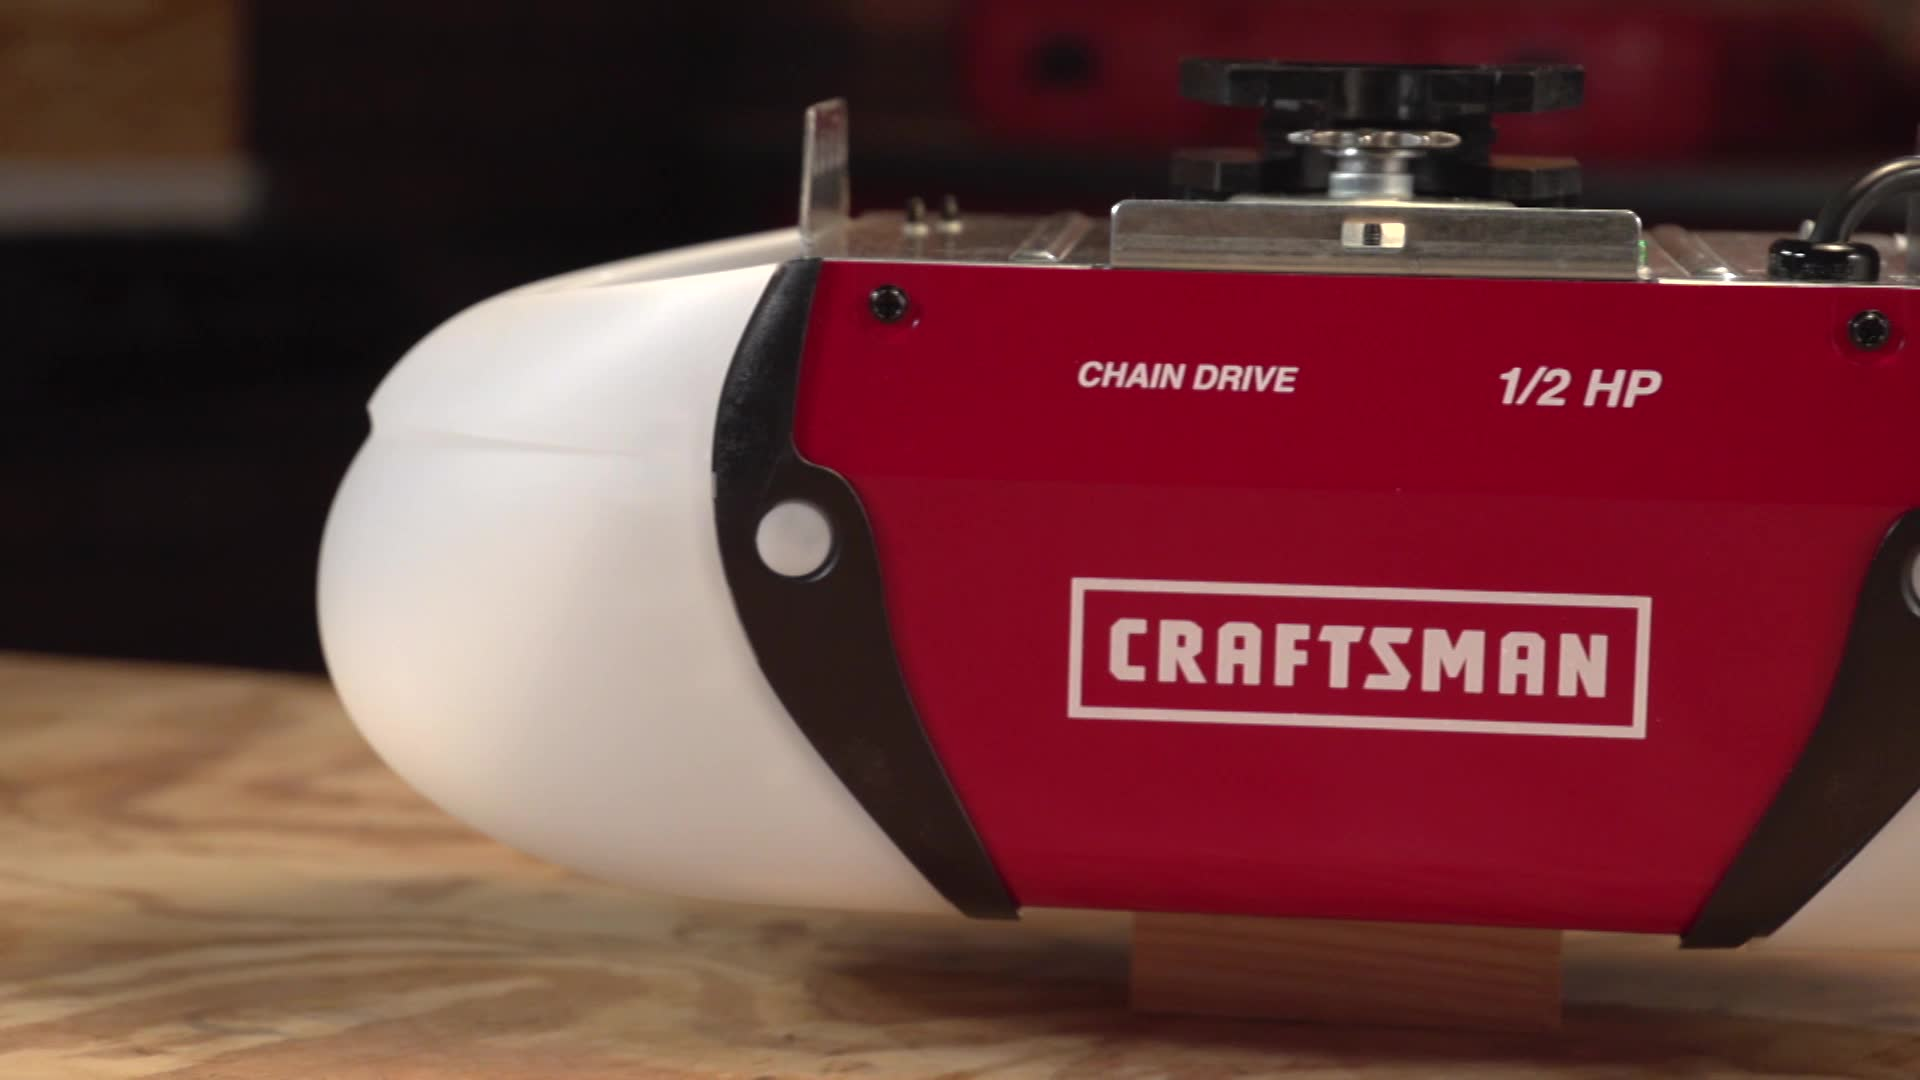 Craftsman Hp Chain Drive Garage Door Opener Review Garage Sanctum